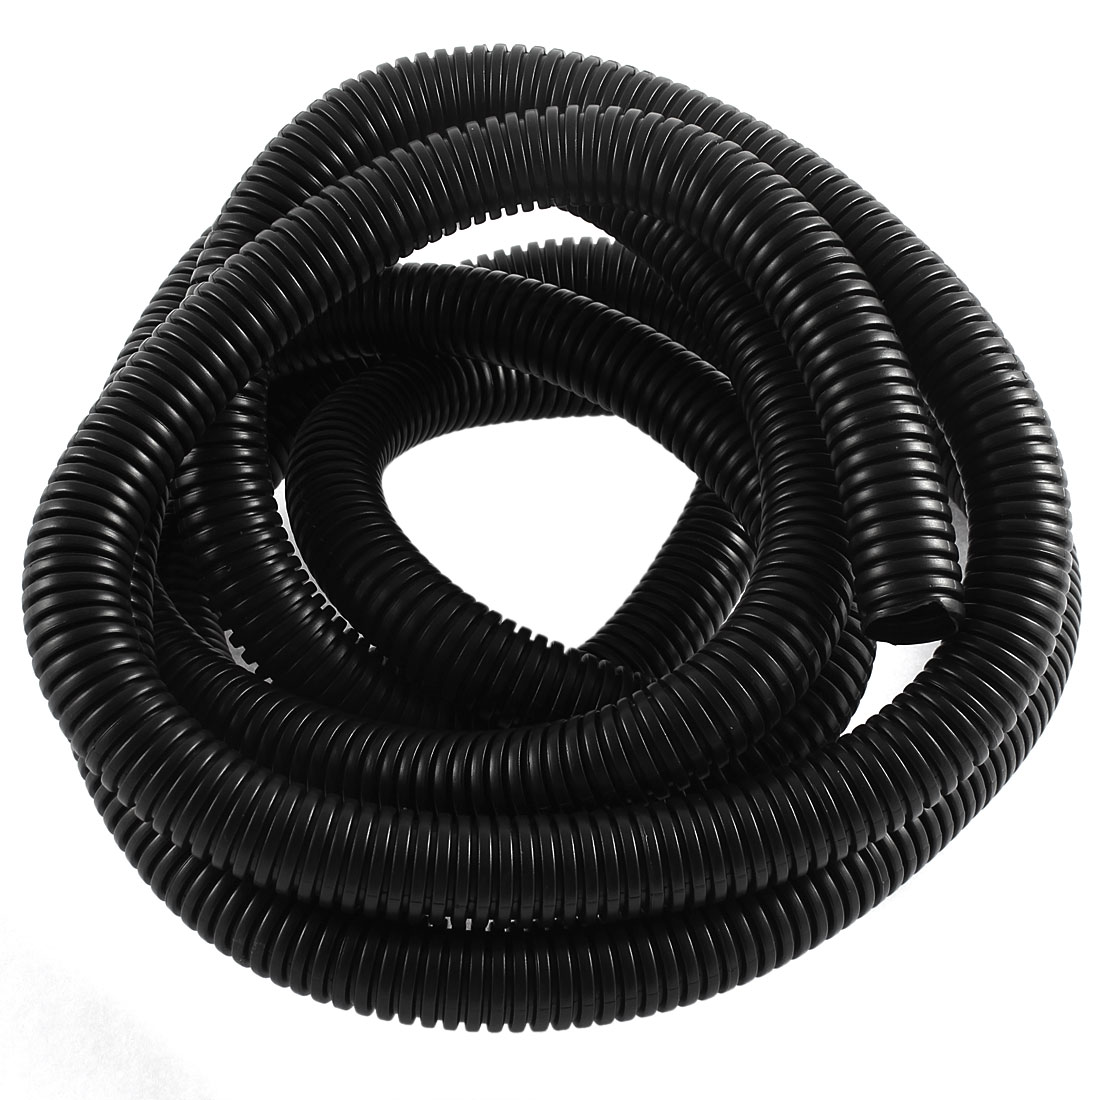 12ft PVC Flexible Corrugated Tubing Wire Cable Conduit Tube Pipe 14.5 x 18.5mm